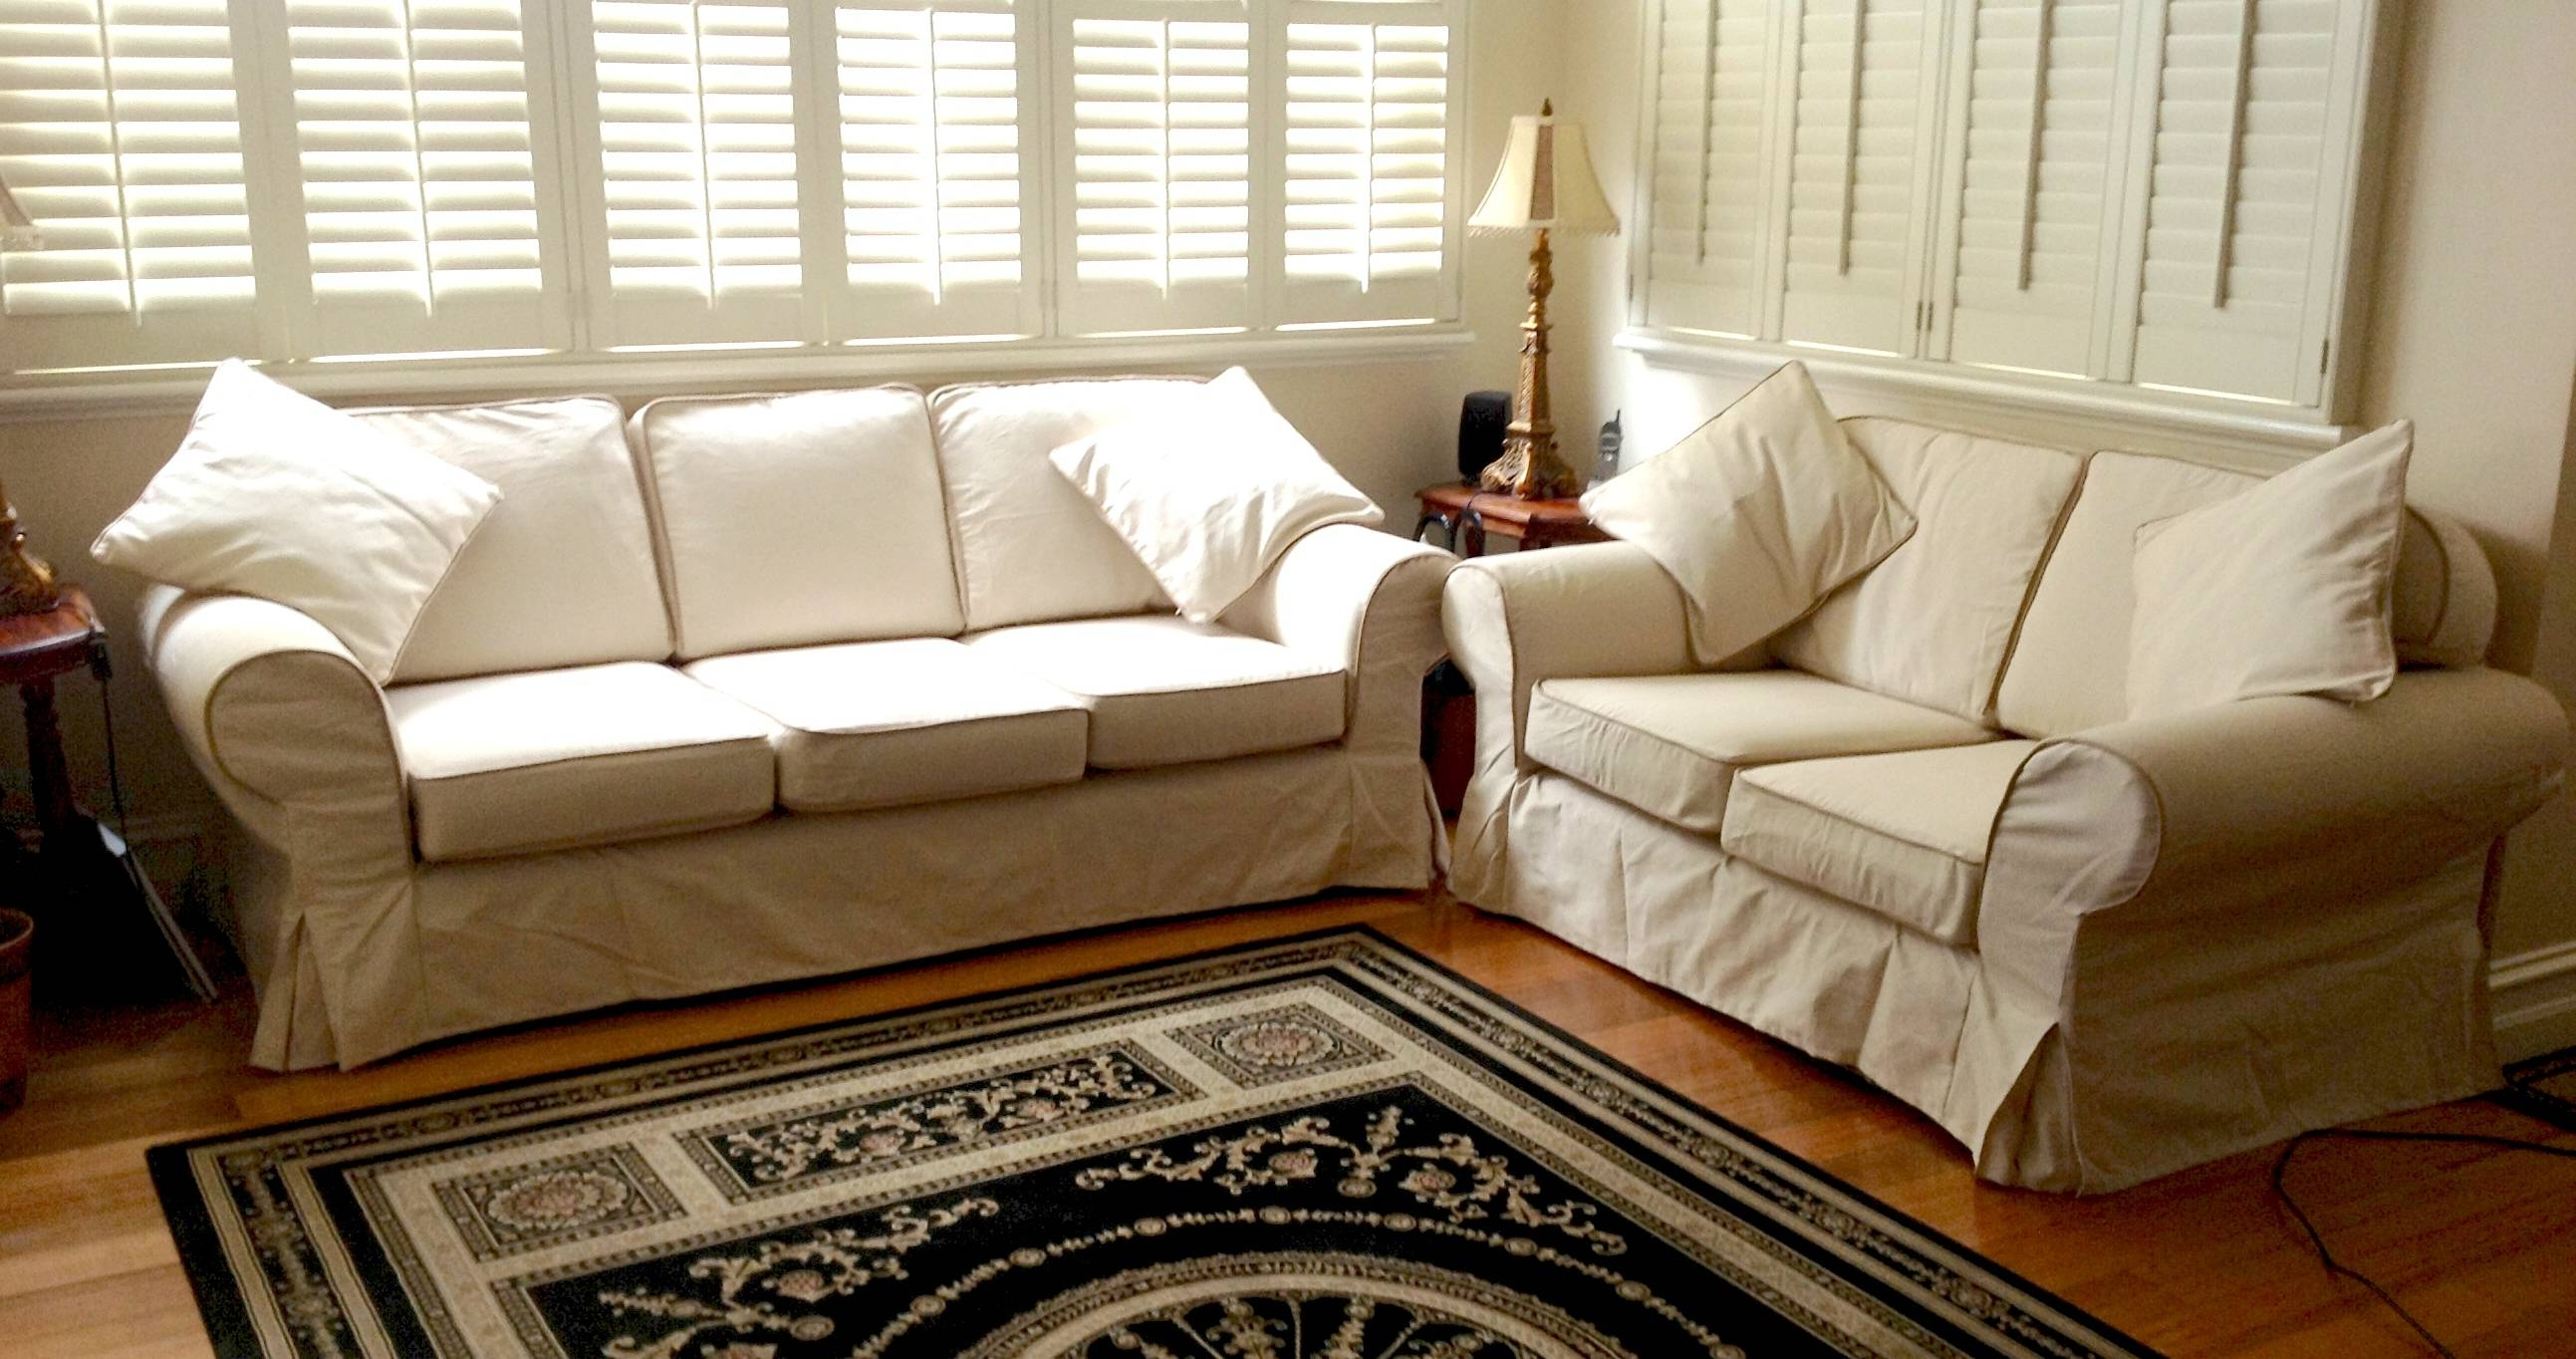 Custom Slipcovers And Couch Cover For Any Sofa Online in Loveseat Slipcovers 3 Pieces (Image 2 of 15)